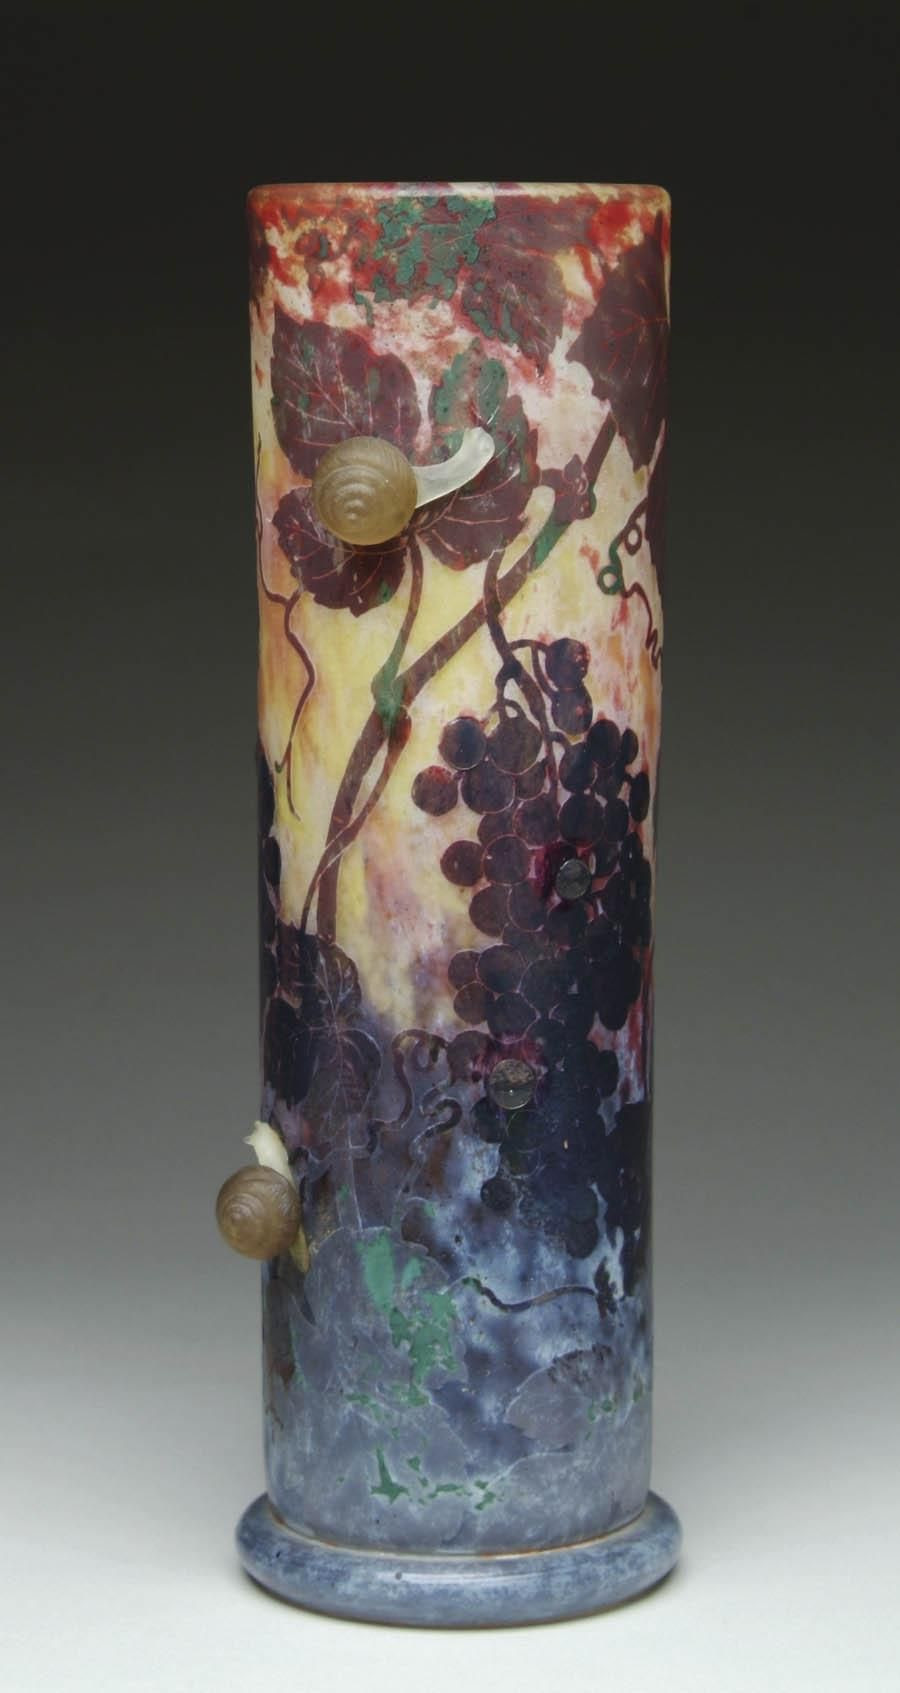 Cameo Glass Vase Of Daum Fra¨res Nancy Applied Acid Etched and Wheel Carved Glass Vase Intended for Daum Fra¨res Nancy Applied Acid Etched and Wheel Carved Glass Vase the Small Applied Snails are Fabulous